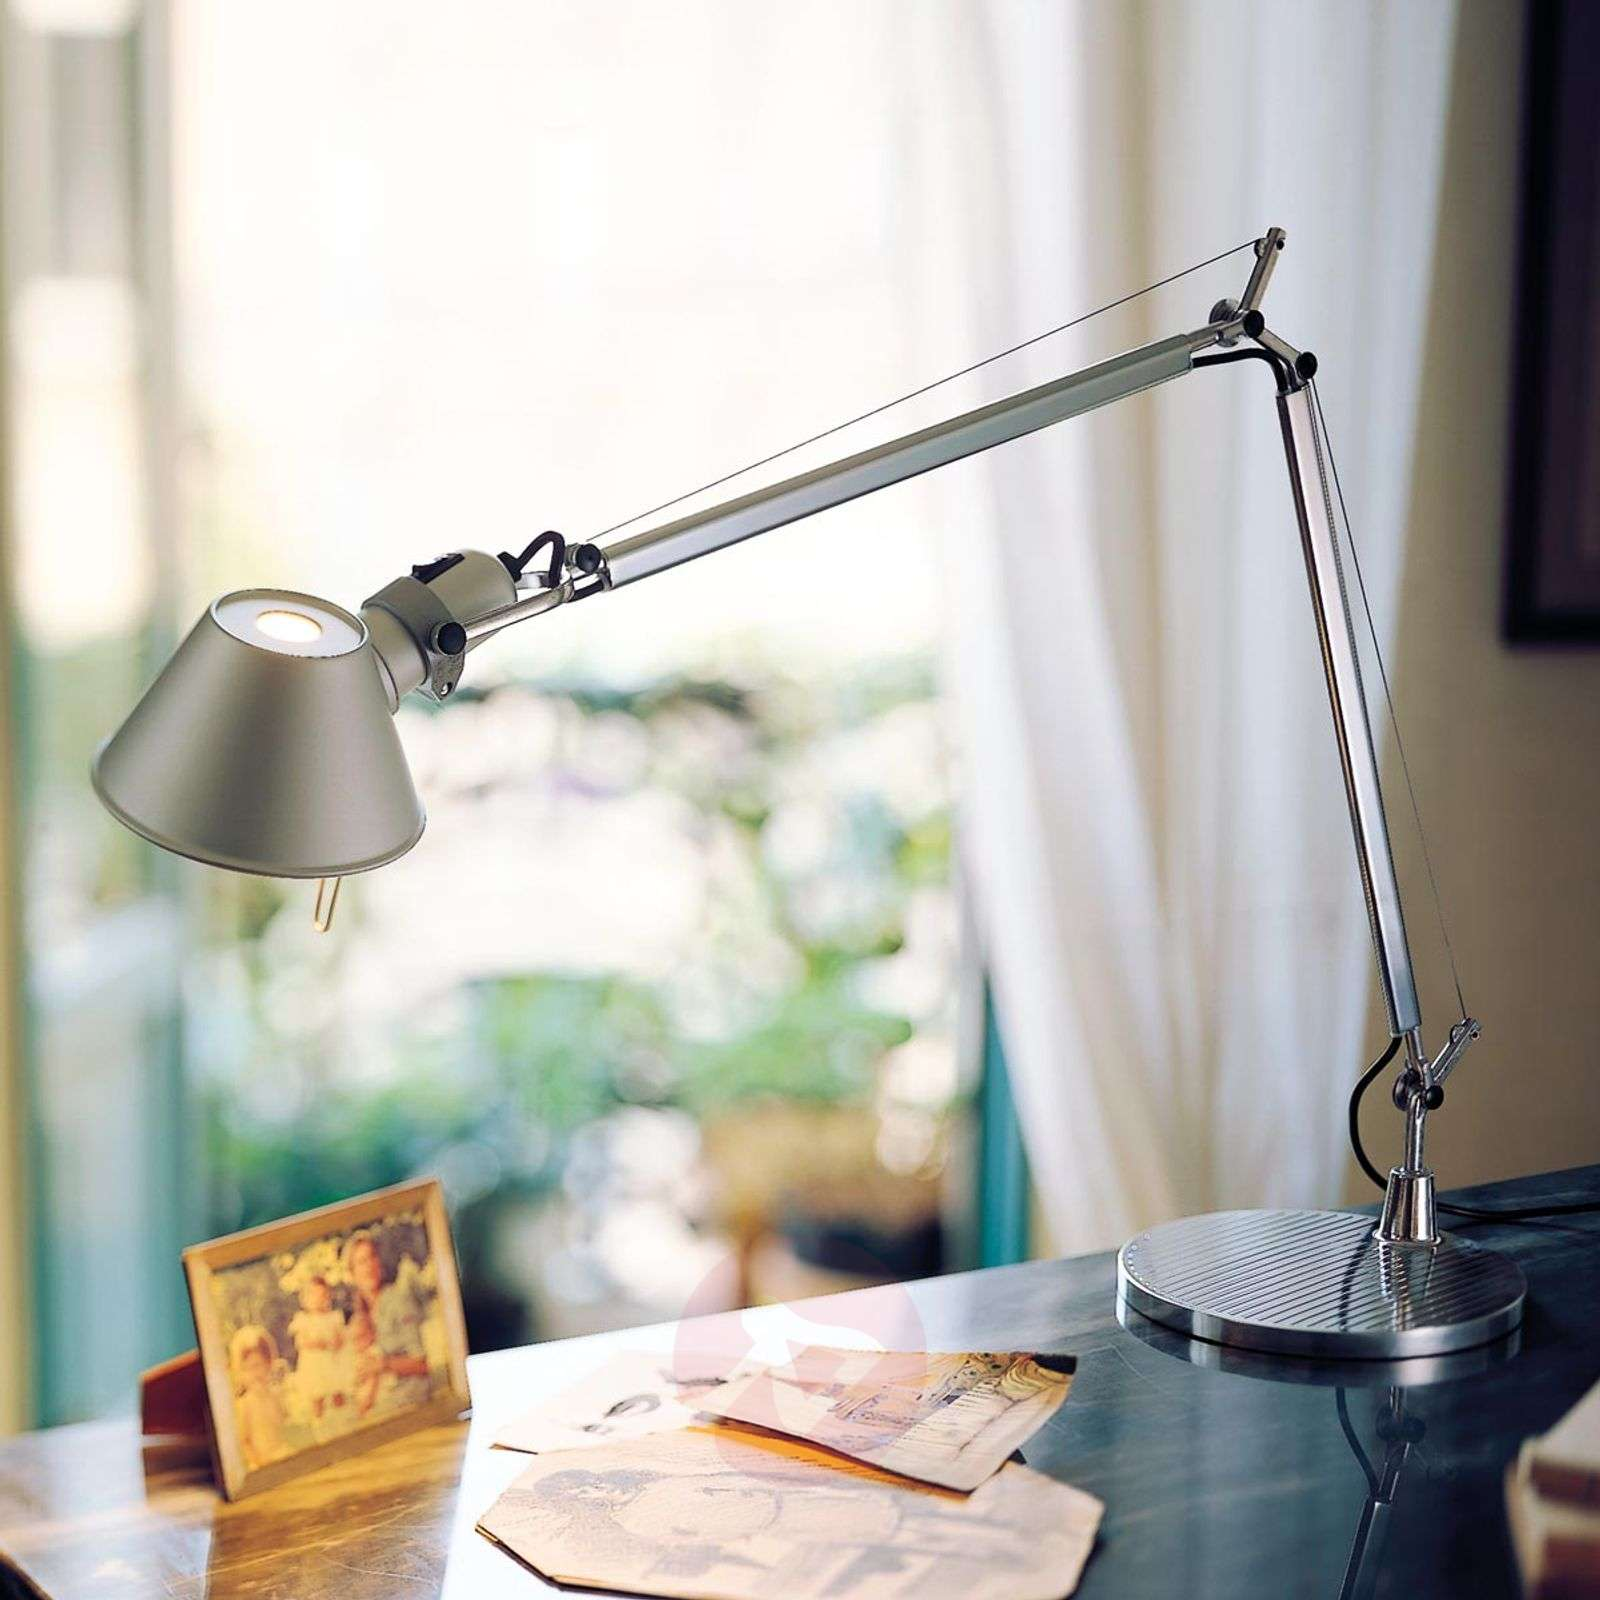 Tolomeo table classic led table lamp lights tolomeo table classic led table lamp 1060069 01 aloadofball Image collections